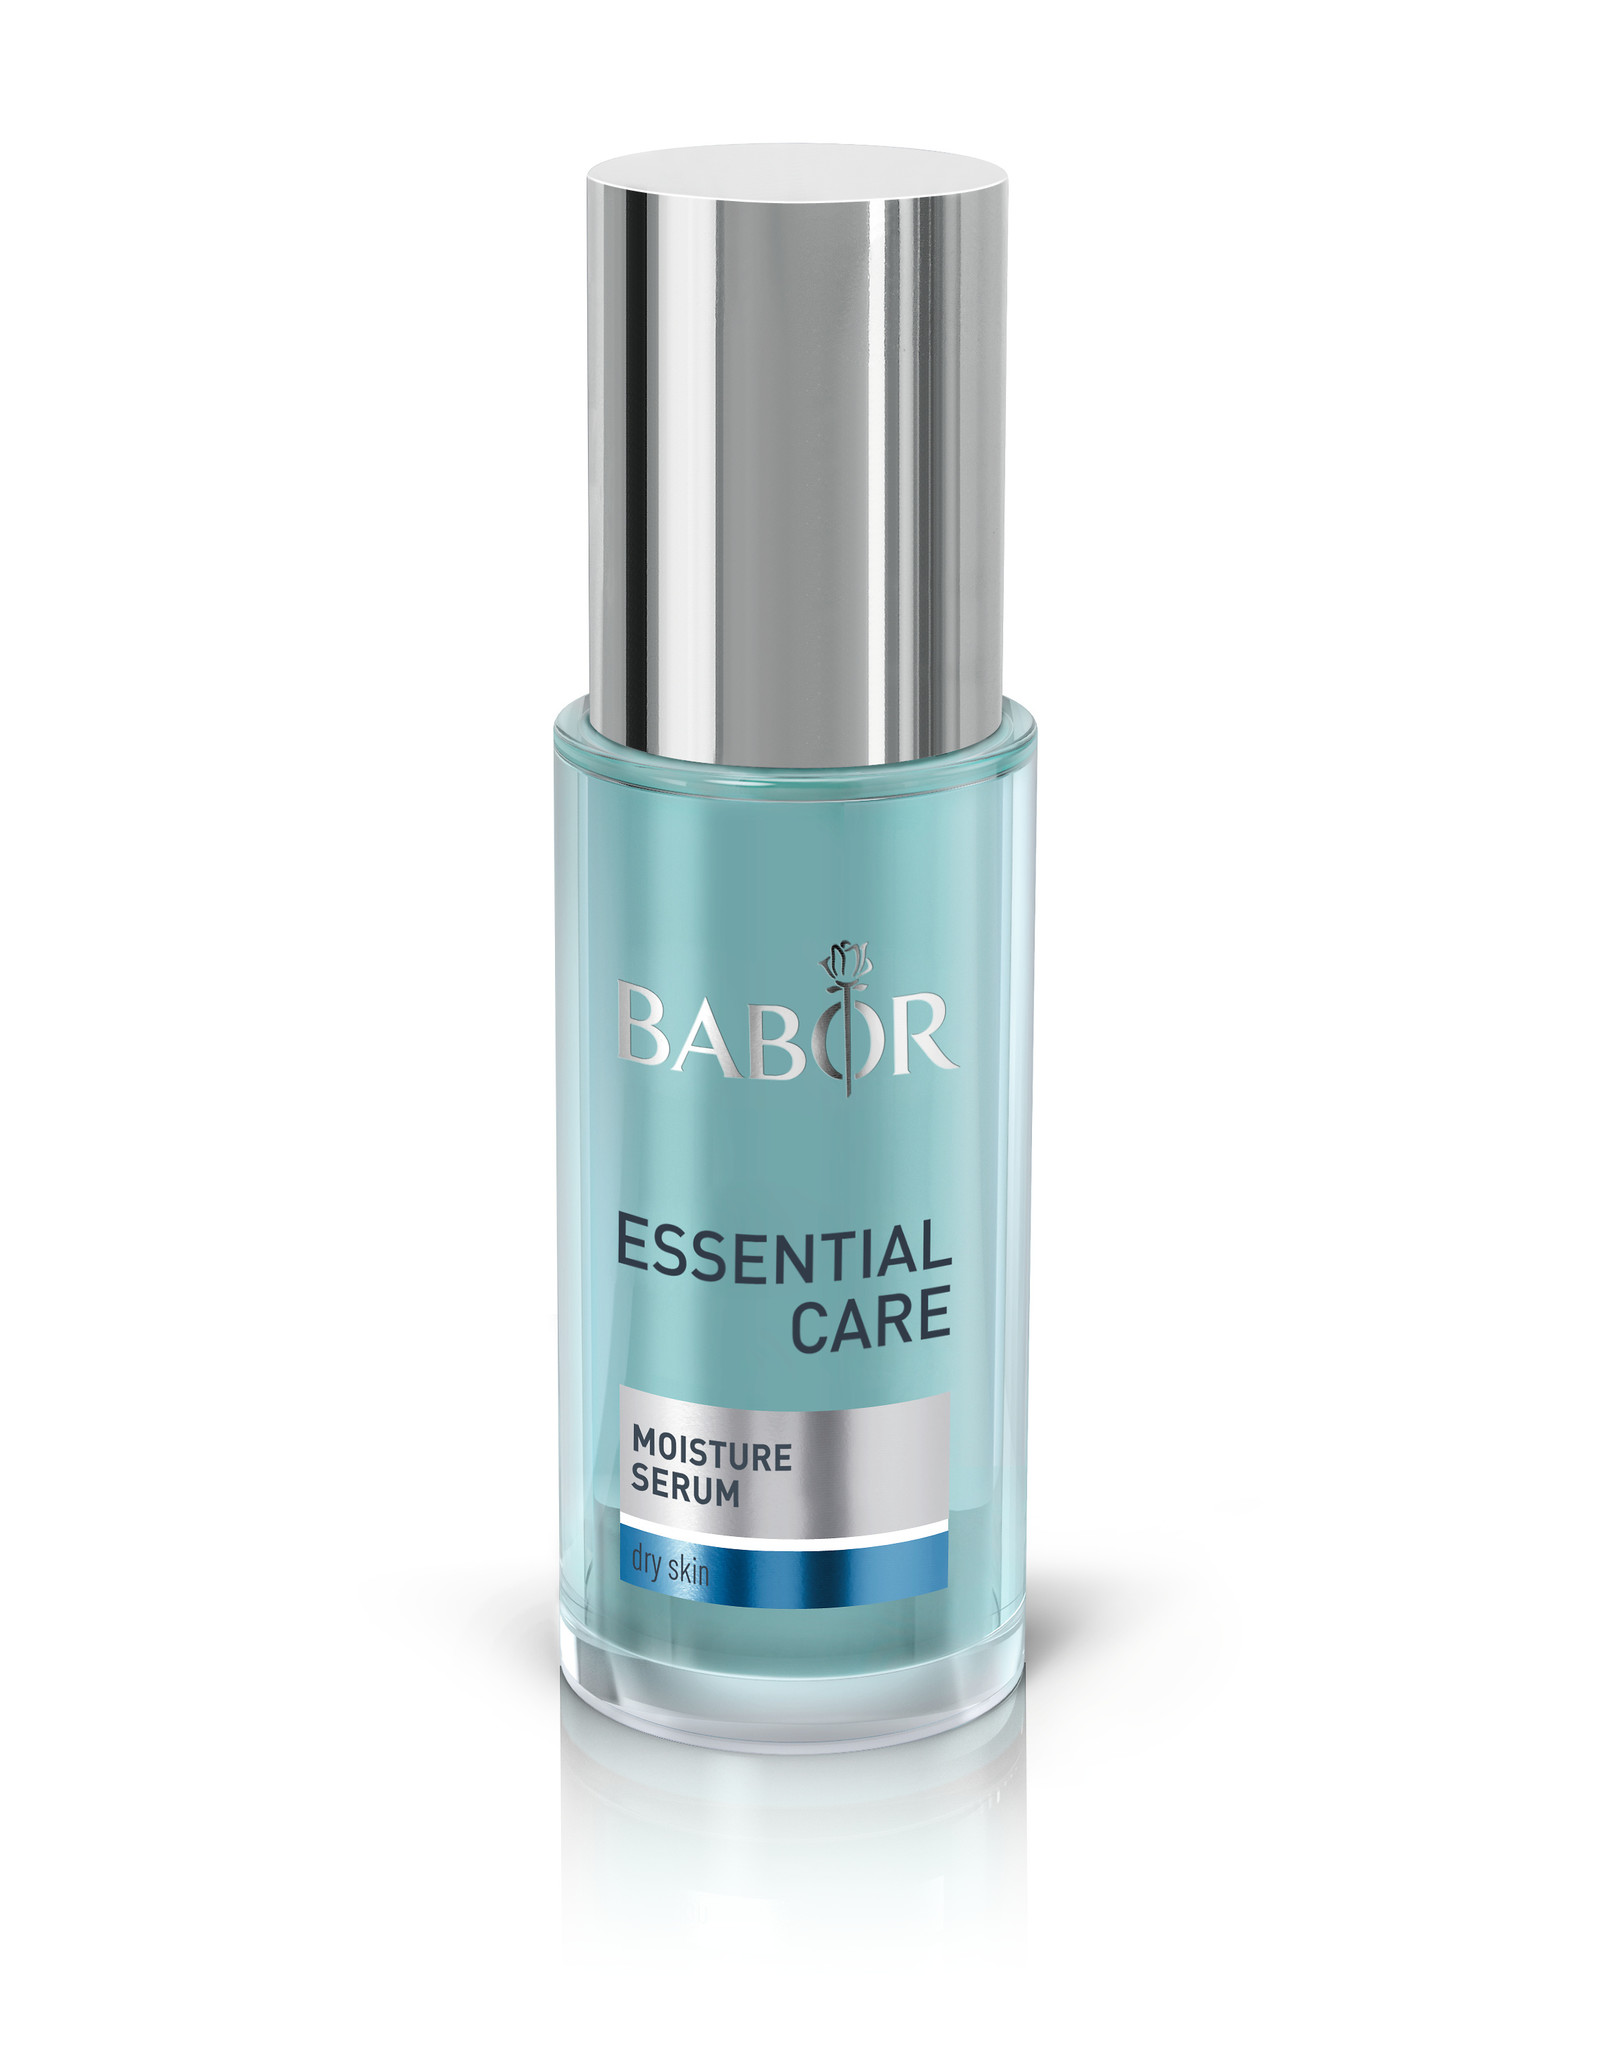 BABOR ESSENTIAL CARE  MOISTURE SERUM 30 ML